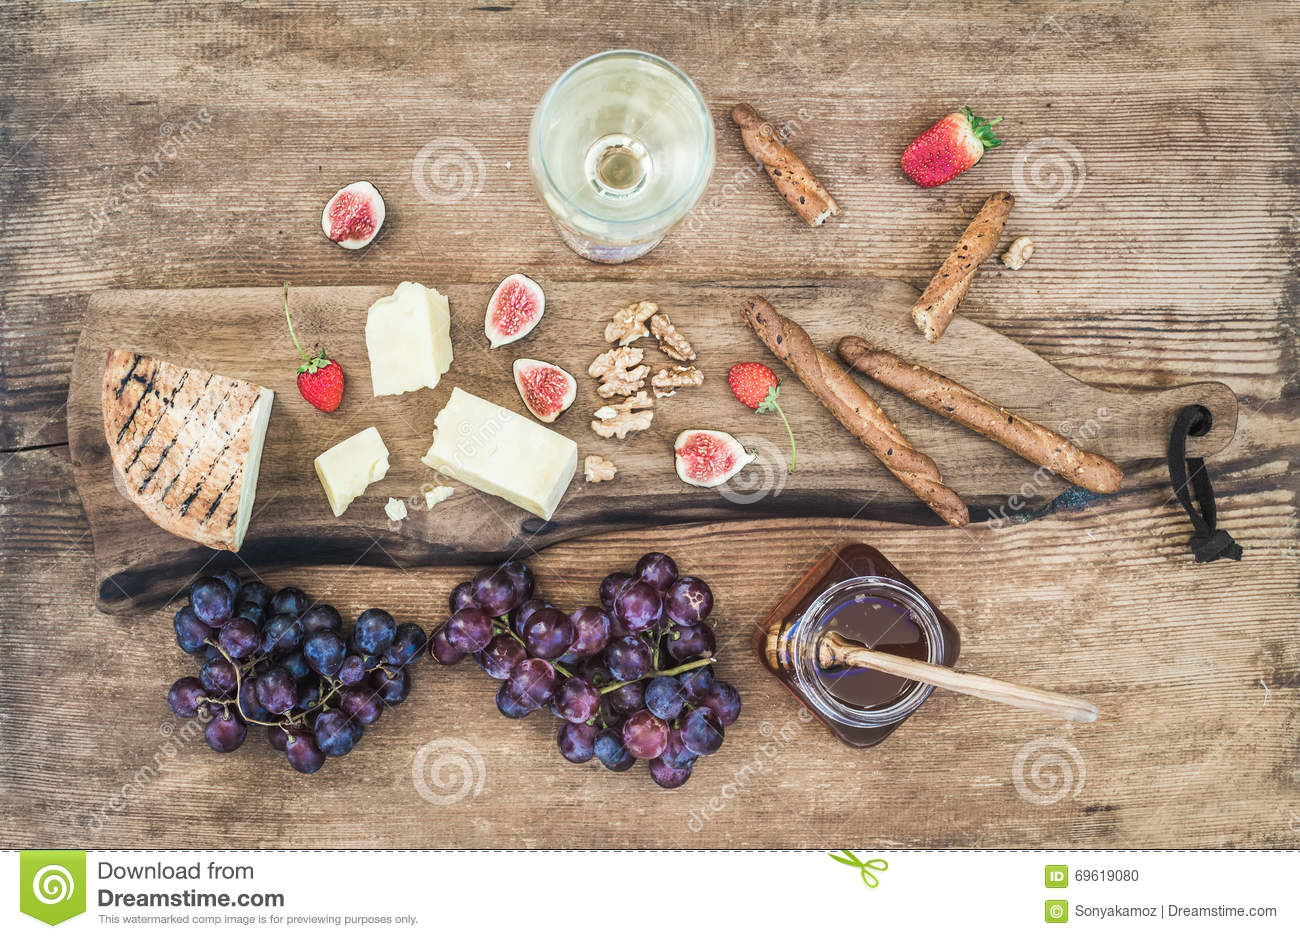 how to serve figs on a cheese board